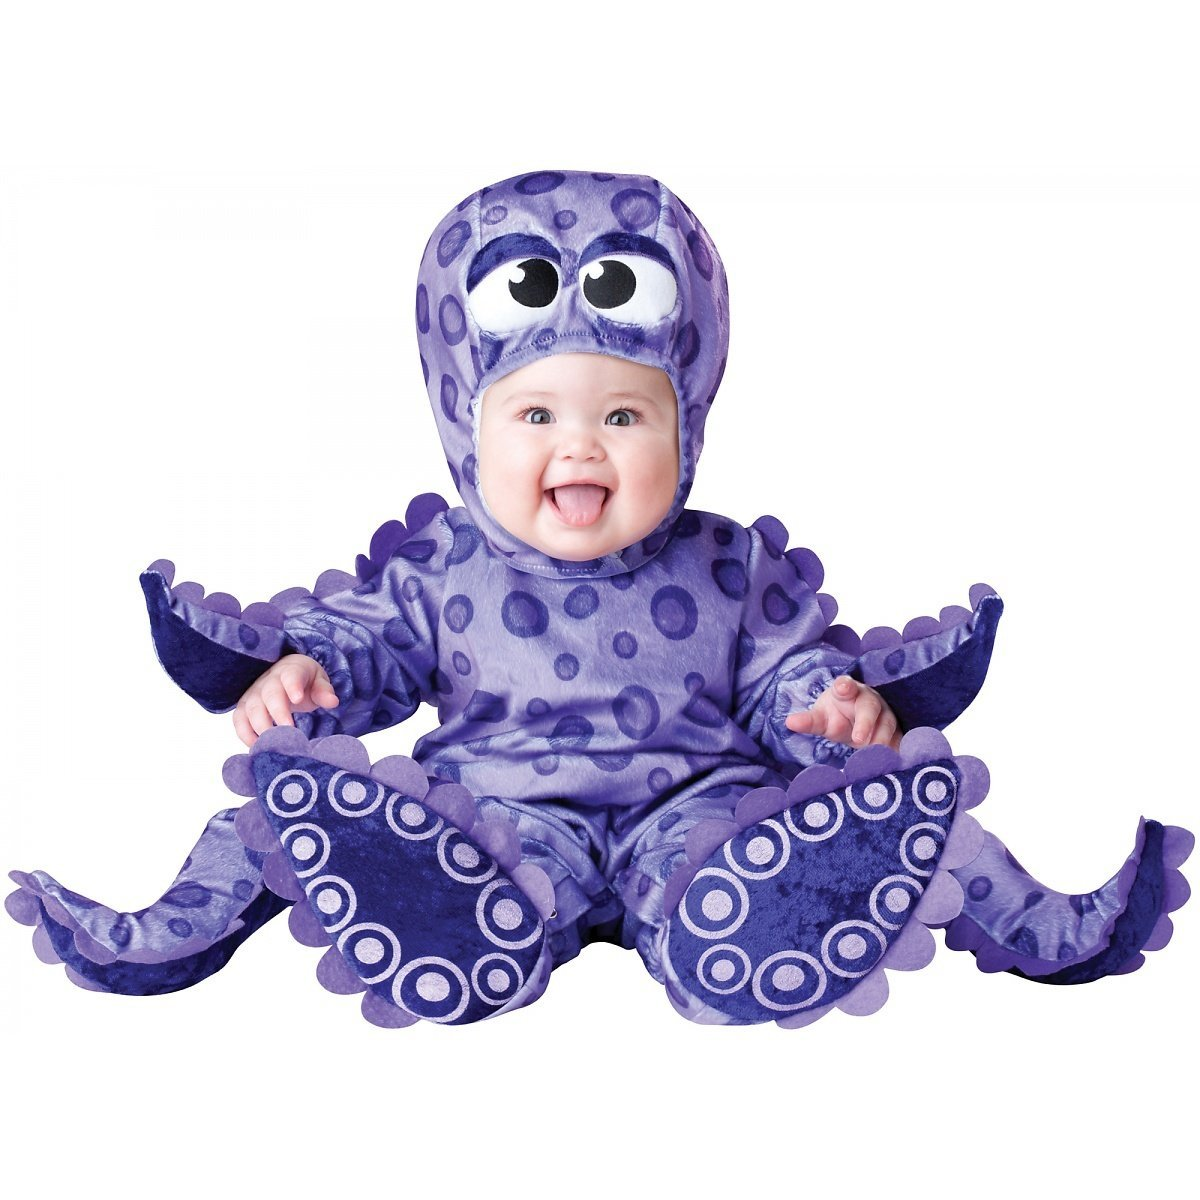 best costumes for halloween - the best selling costumes for halloween